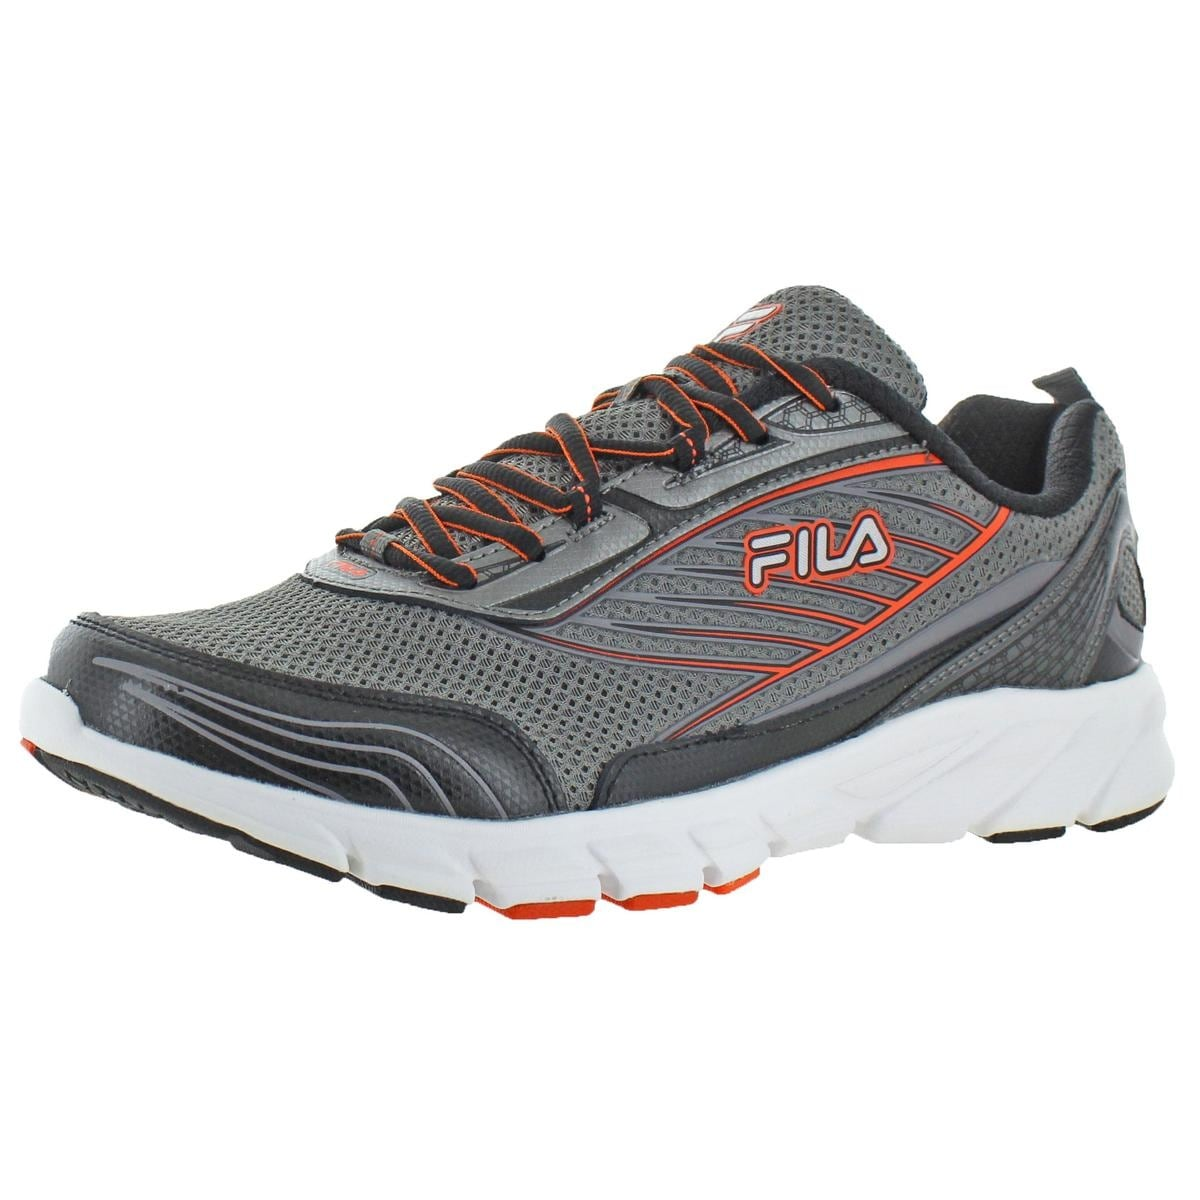 73d430e58 Shop Fila Mens Forward 2 Running Shoes Athletic Lifestyle - Free Shipping  On Orders Over  45 - Overstock - 25580454